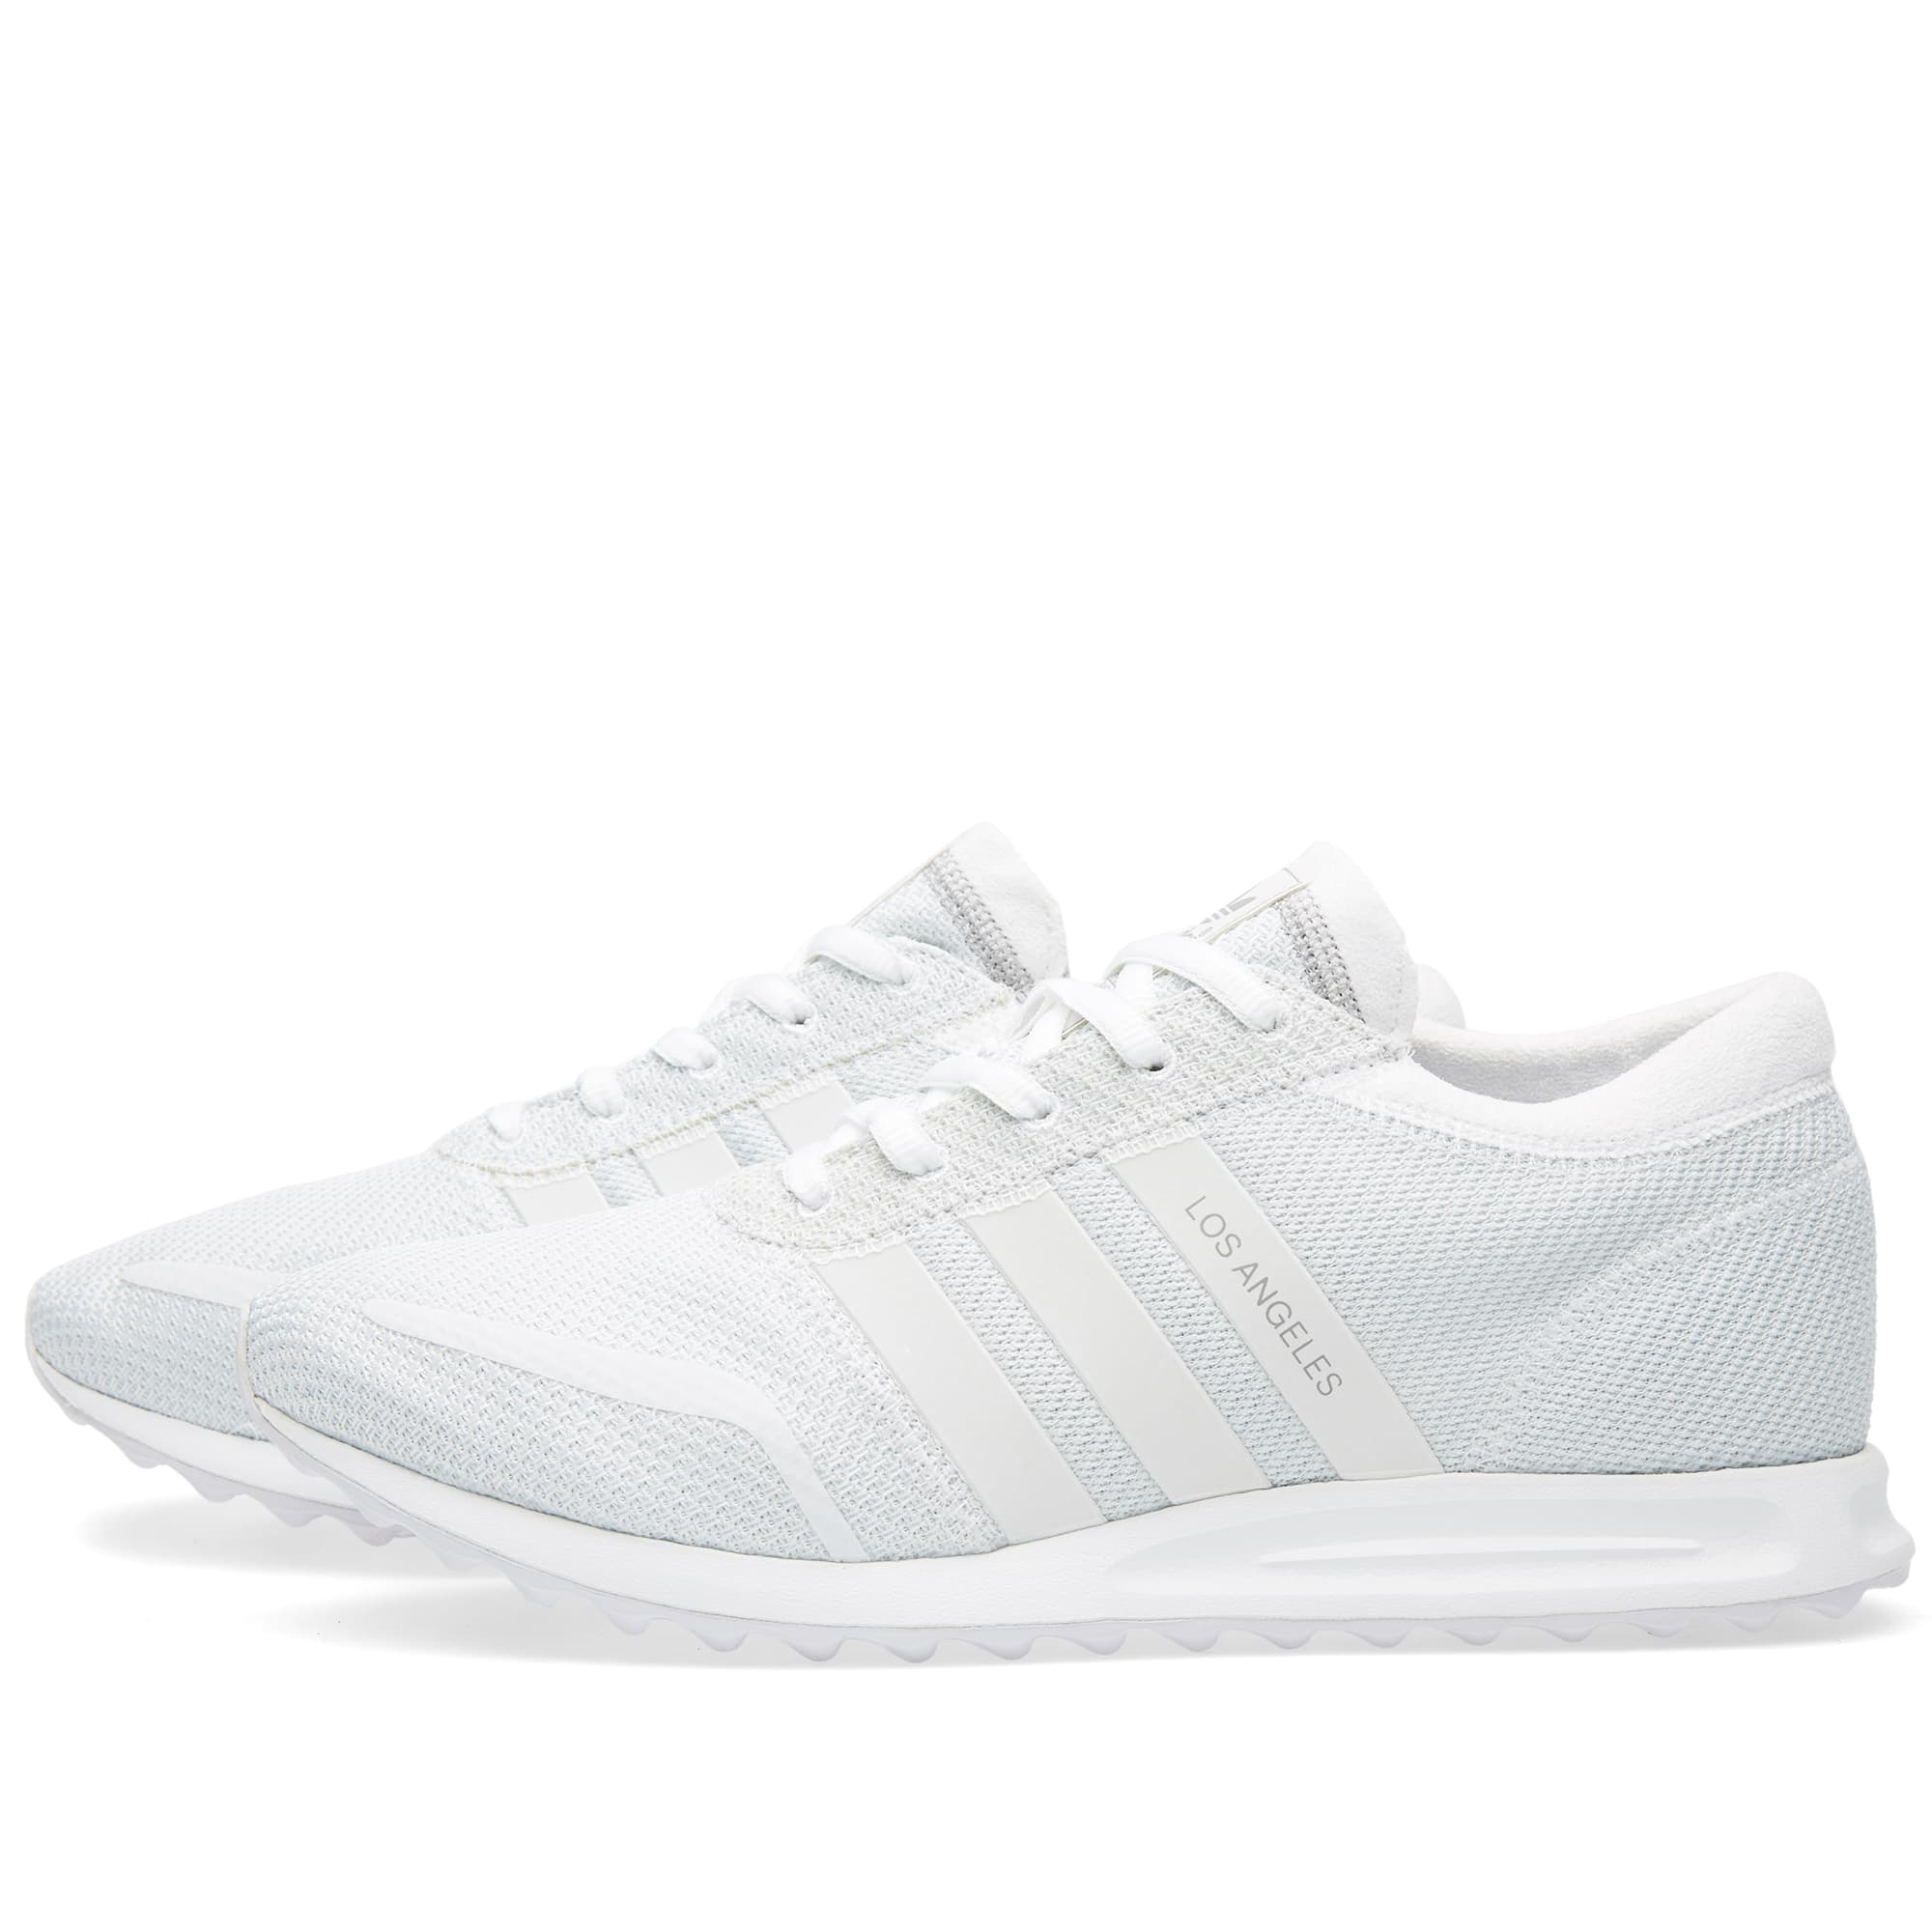 low priced 3cffe eb287 Adidas Los Angeles White   Vintage White   END.